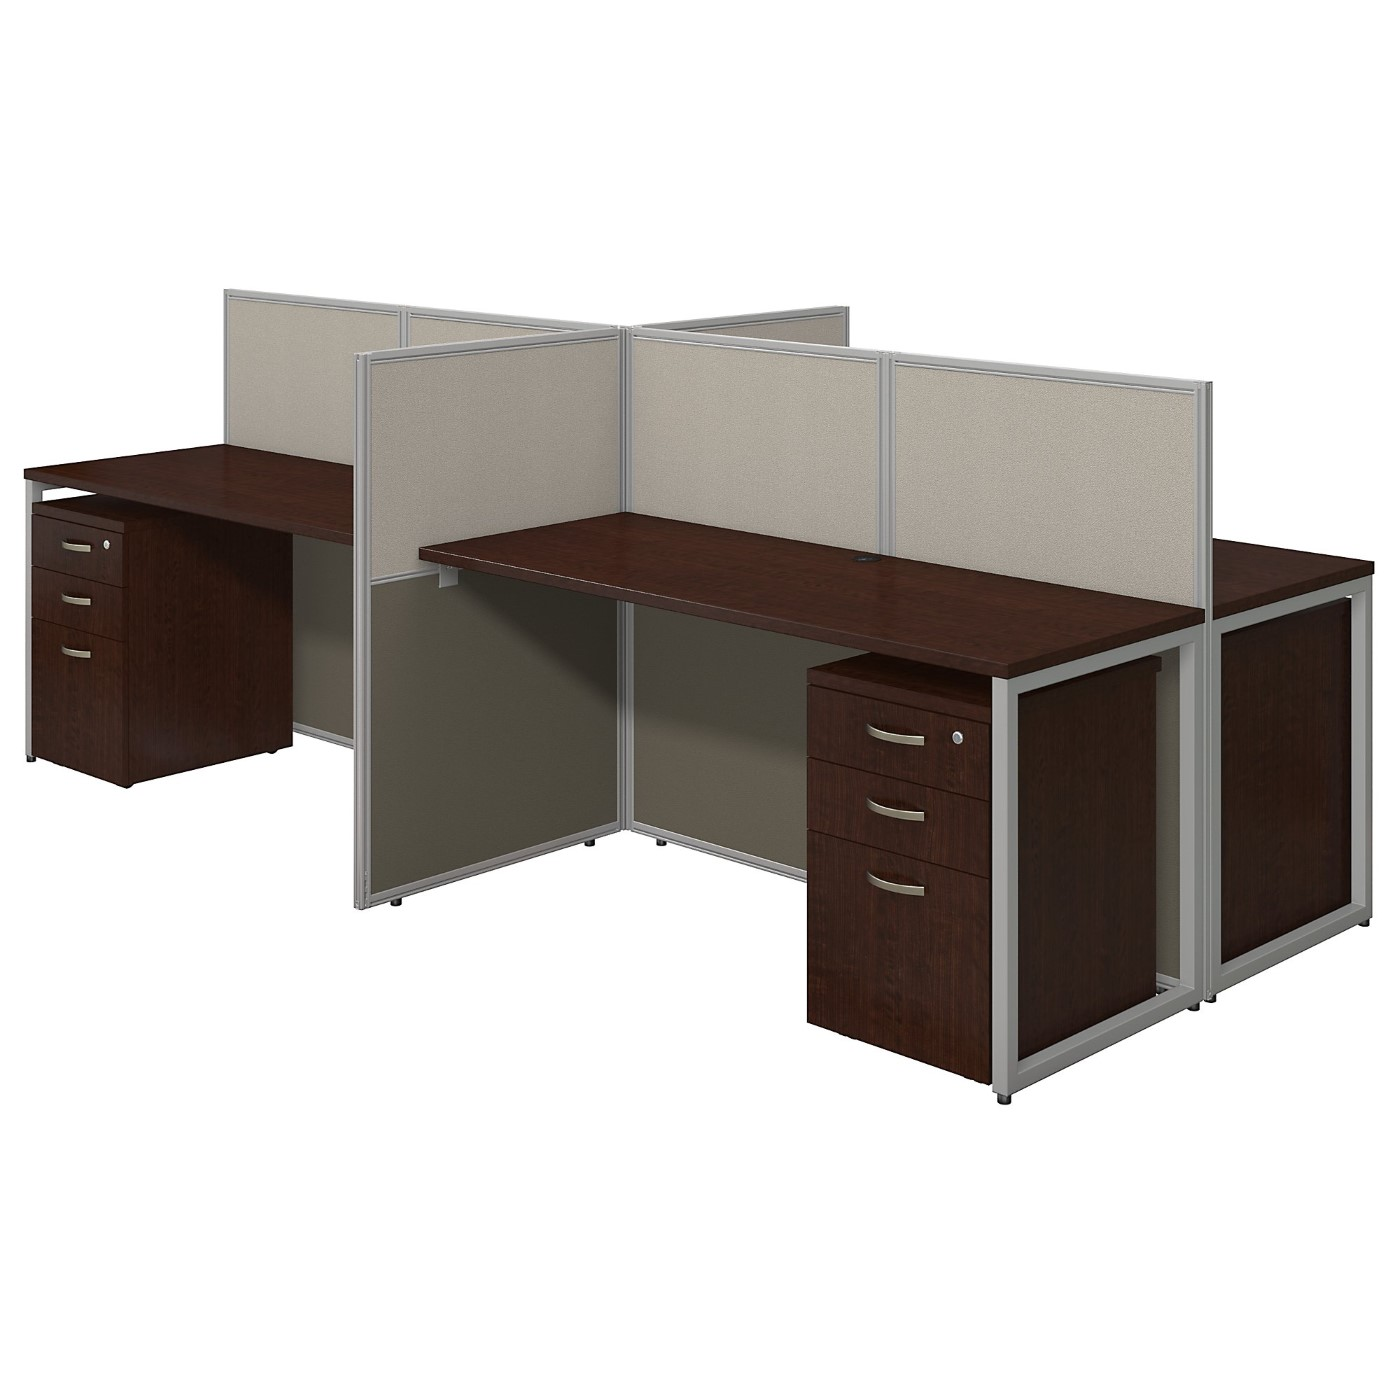 BUSH BUSINESS FURNITURE EASY OFFICE 60W 4 PERSON CUBICLE DESK WITH FILE CABINETS AND 45H PANELS. FREE SHIPPING SALE DEDUCT 10% MORE ENTER '10percent' IN COUPON CODE BOX WHILE CHECKING OUT. ENDS 5-31-20.